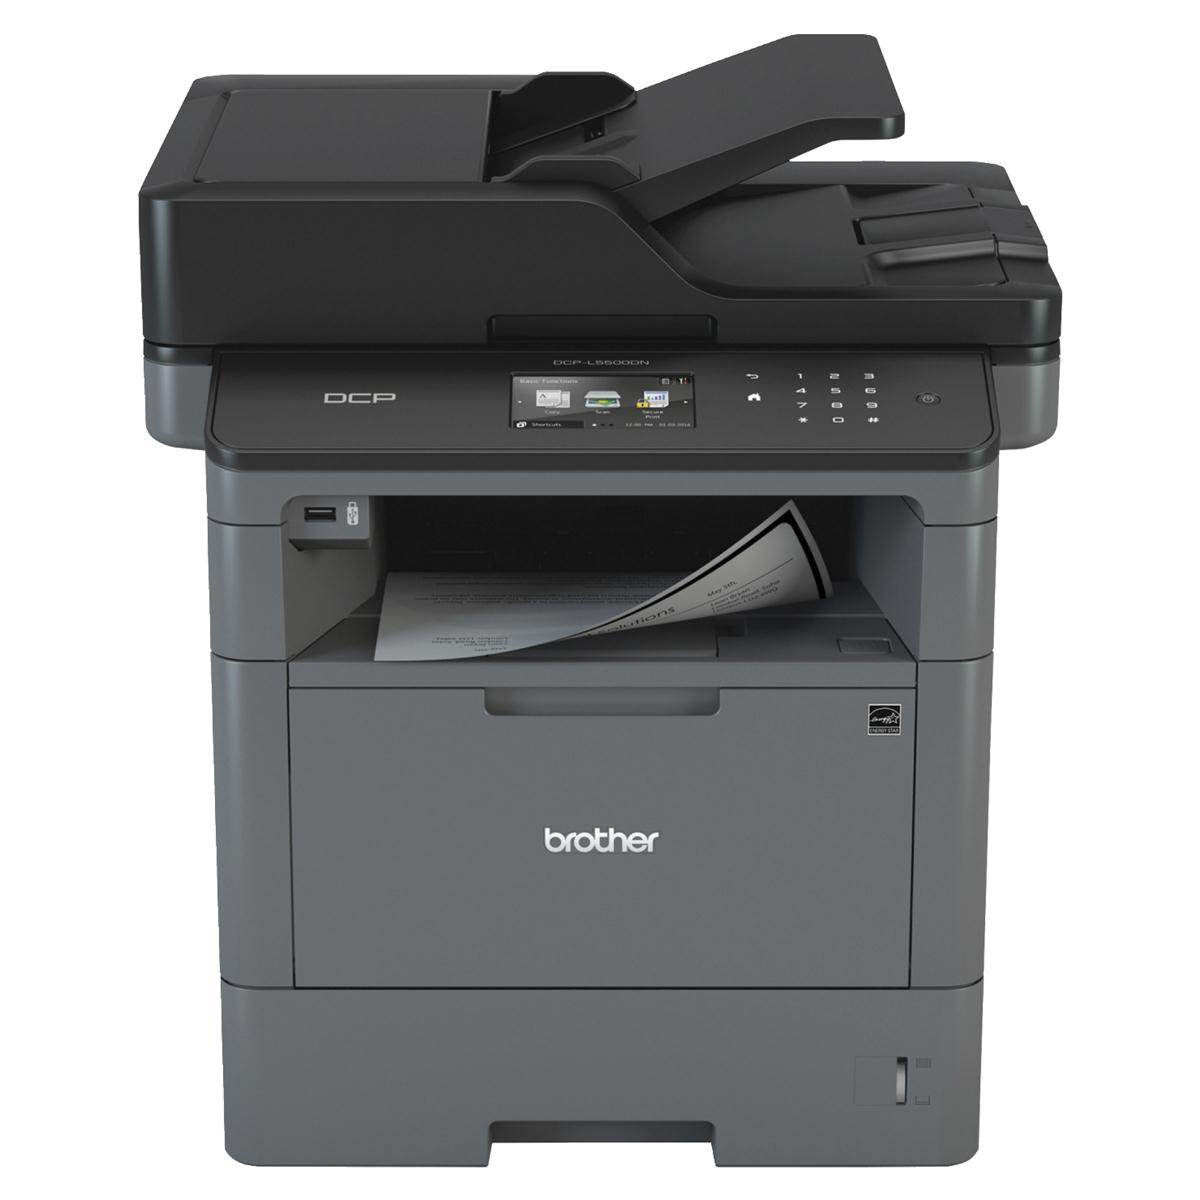 Laser Printers Brother DCP-L5500DN Pro All-In-One Mono A4 Laser Printer 40ppm Auto Duplex Ref DCPL5500DNZU1